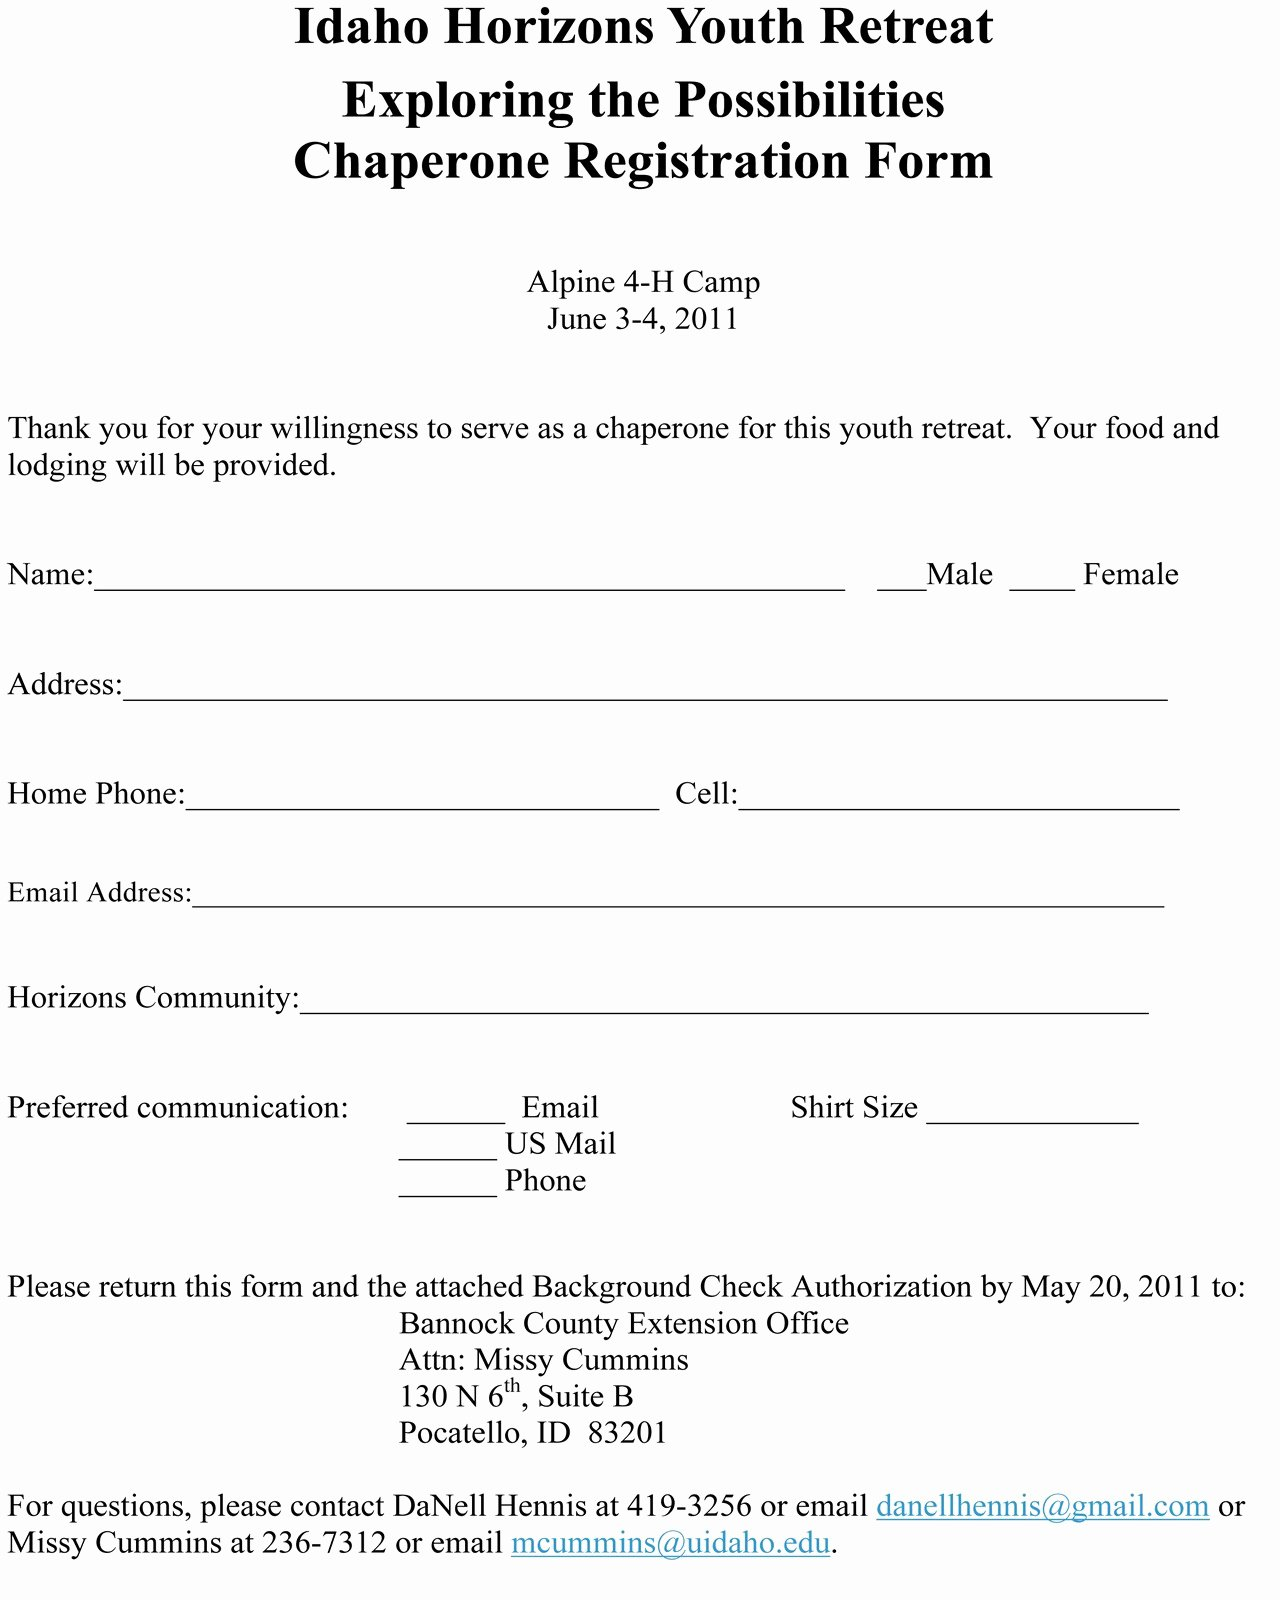 Registration forms Template Word Elegant Ideas Collection Able Registration form Template Word and